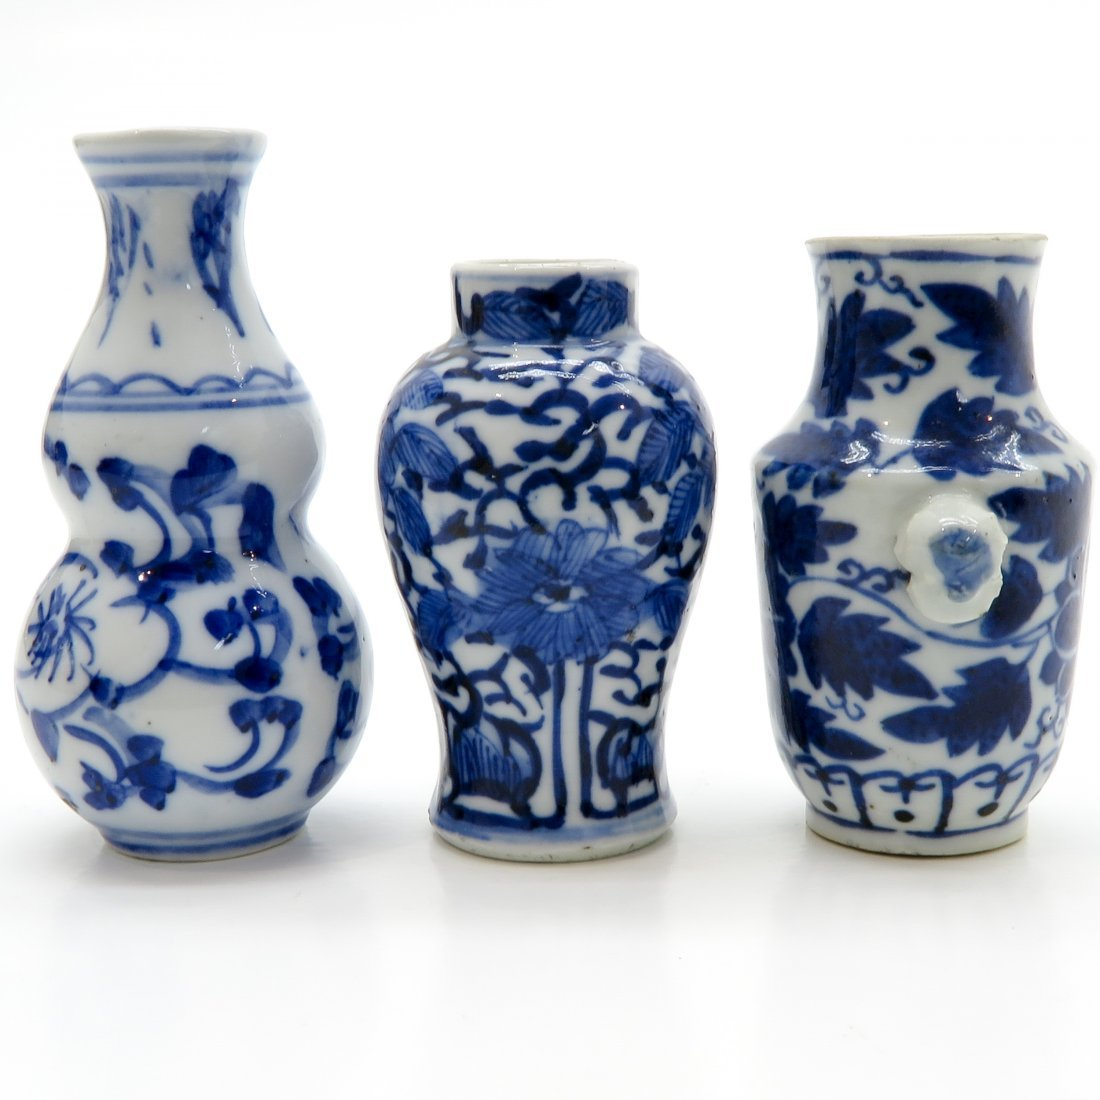 Lot of China Porcelain Miniature Vases - 2